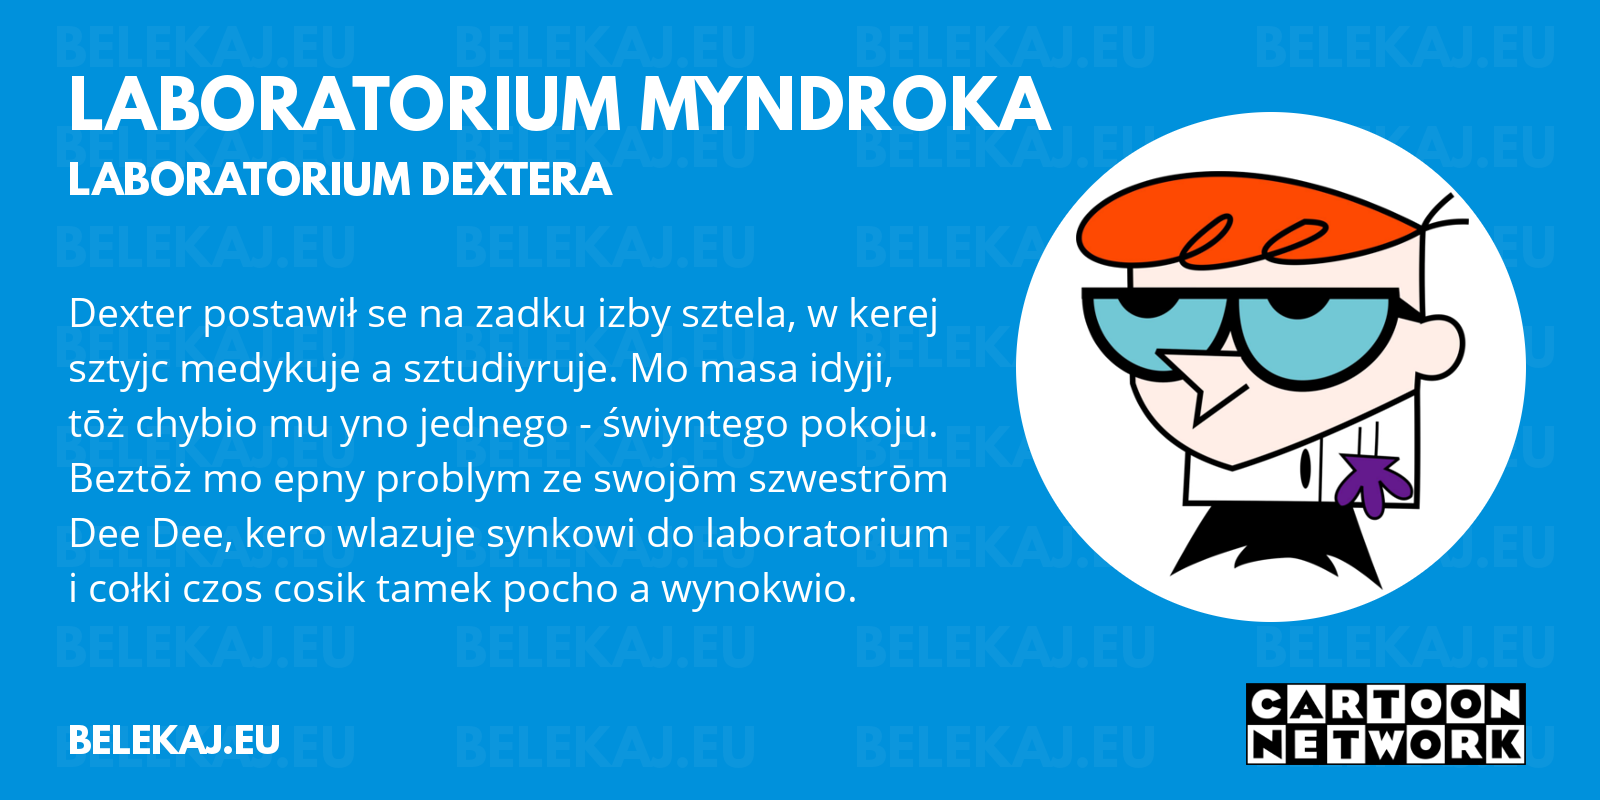 Laboratorium Dextera, Cartoon Network po śląsku - blog bele kaj